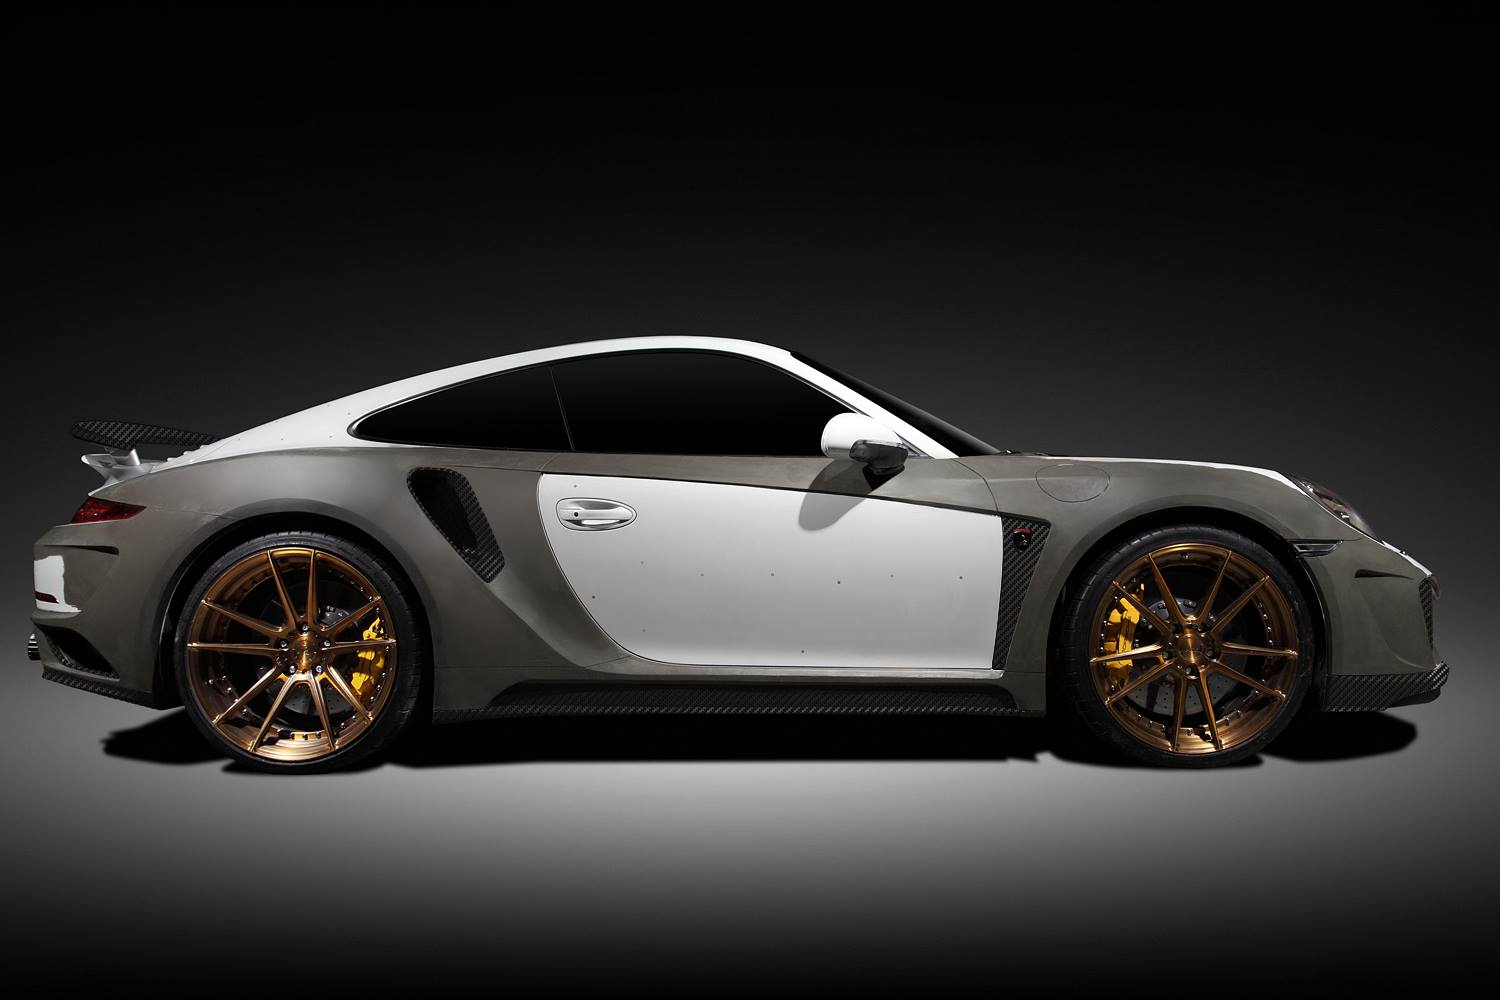 Cheap Auto Tires >> New Porsche 911 Turbo Singer GTR Tuning Project Announced by TopCar - autoevolution